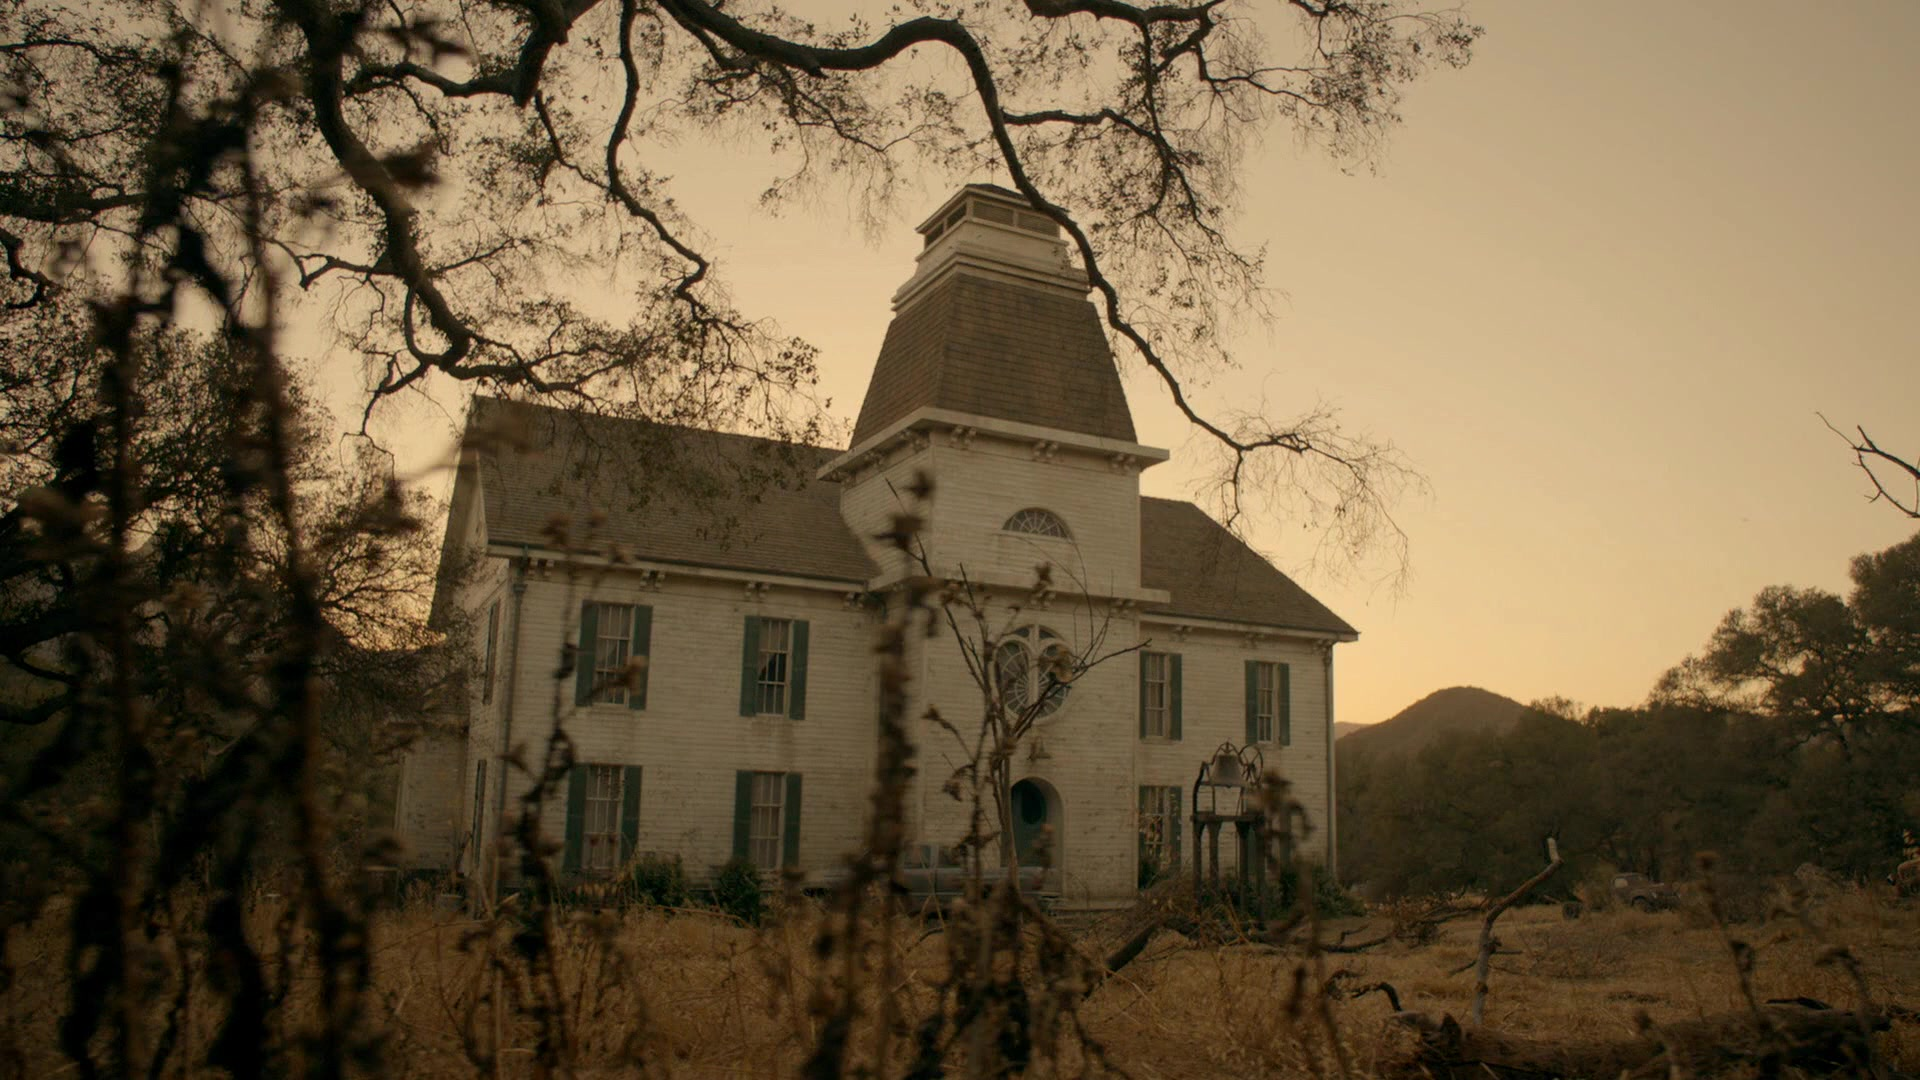 roanoke house american horror story wiki fandom powered by wikia rh americanhorrorstory fandom com